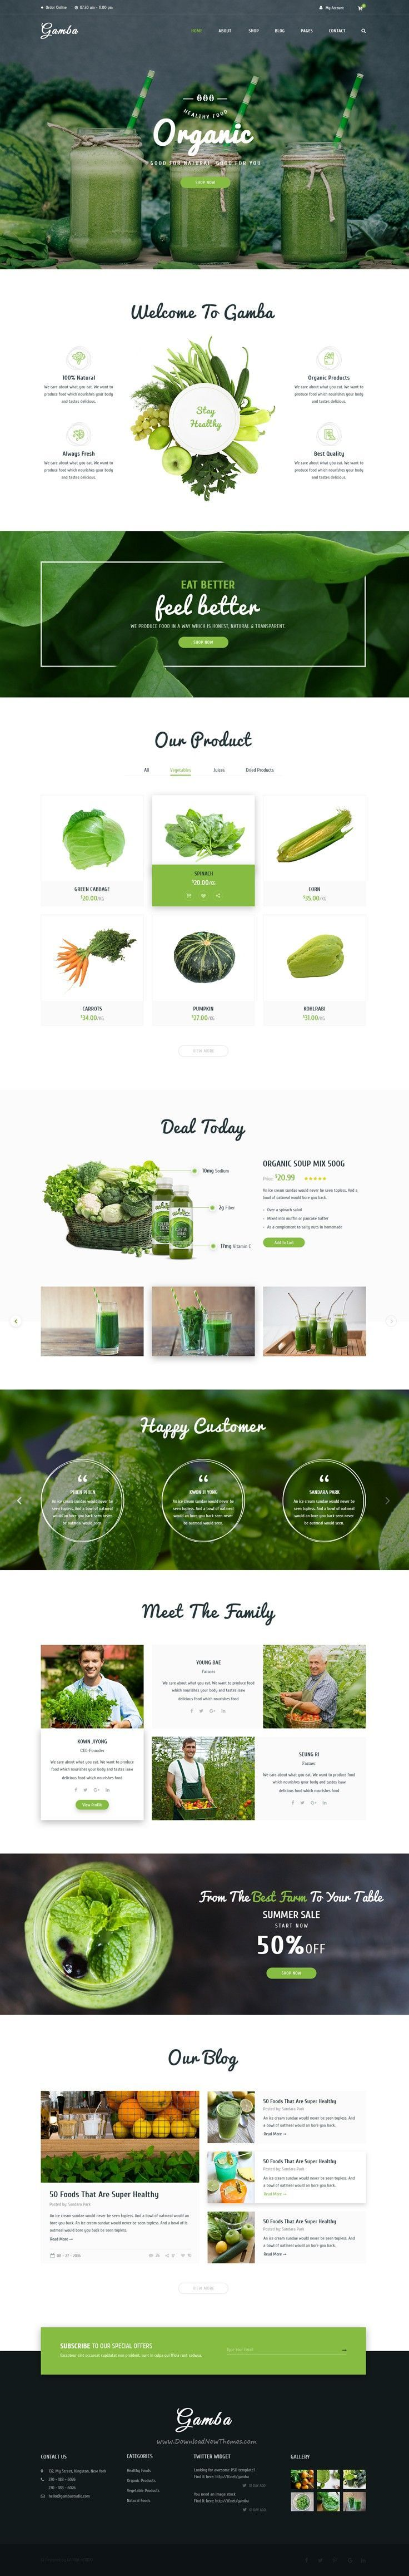 Gamba is a powerful, modern and creative  Latest News & Trends on #webdesign | http://webworksagency.com